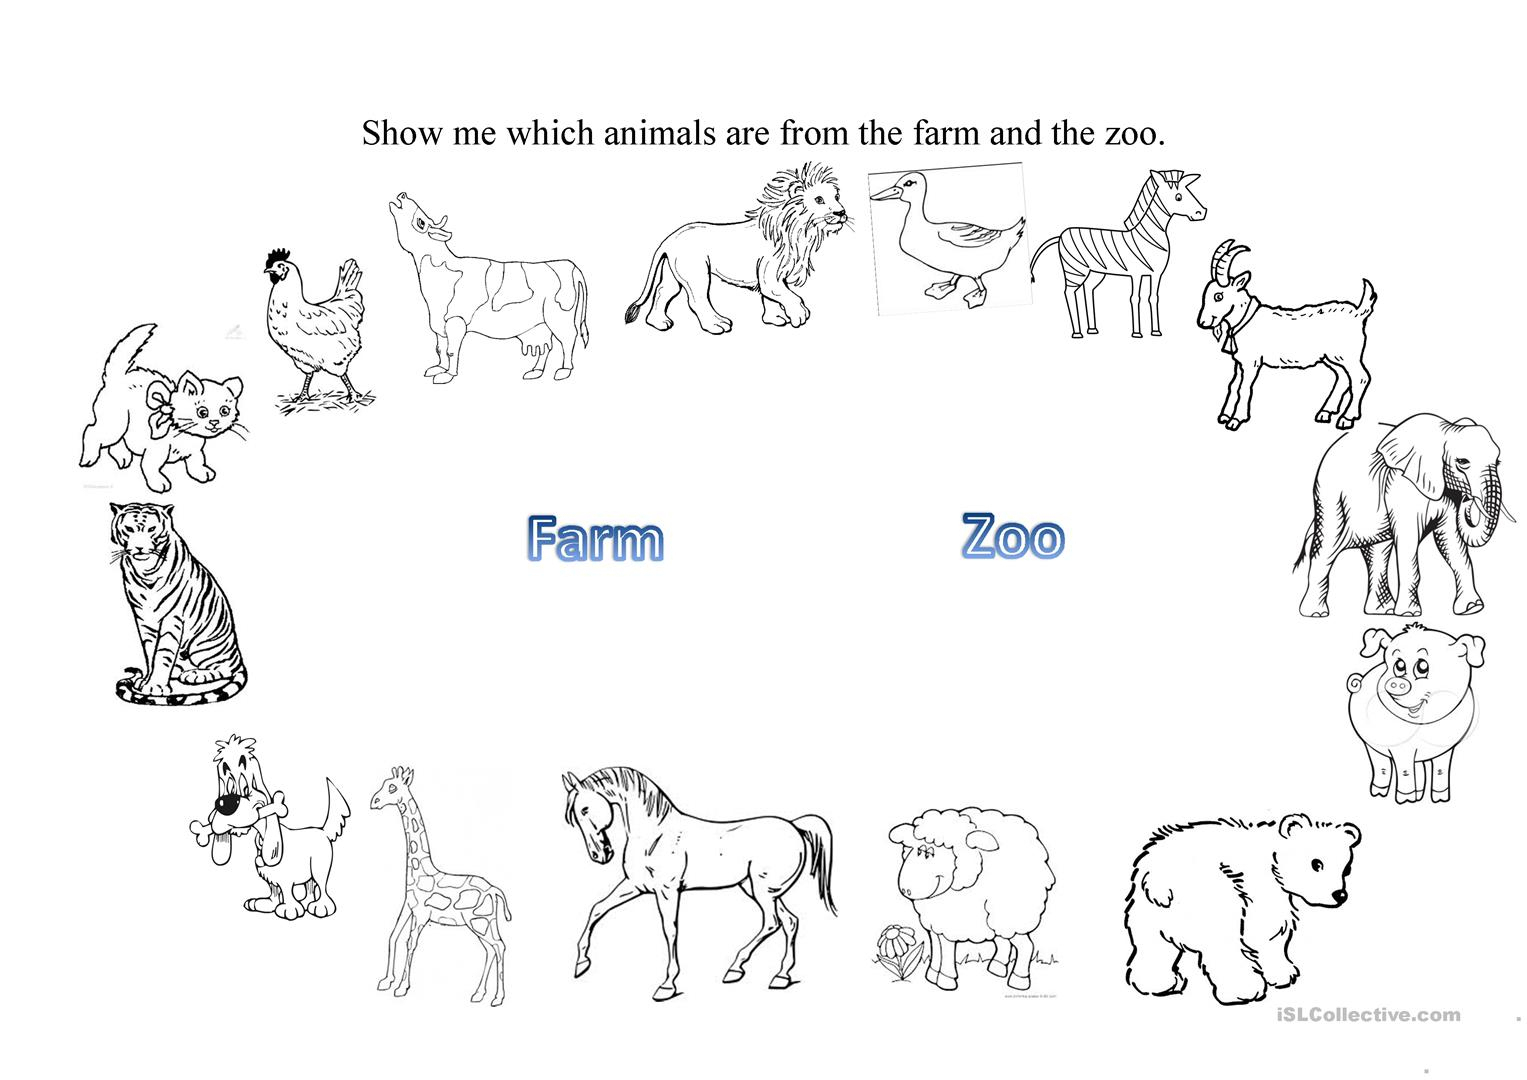 Farm And Zoo Animals Worksheet - Free Esl Printable Worksheets Made | Free Printable Zoo Worksheets